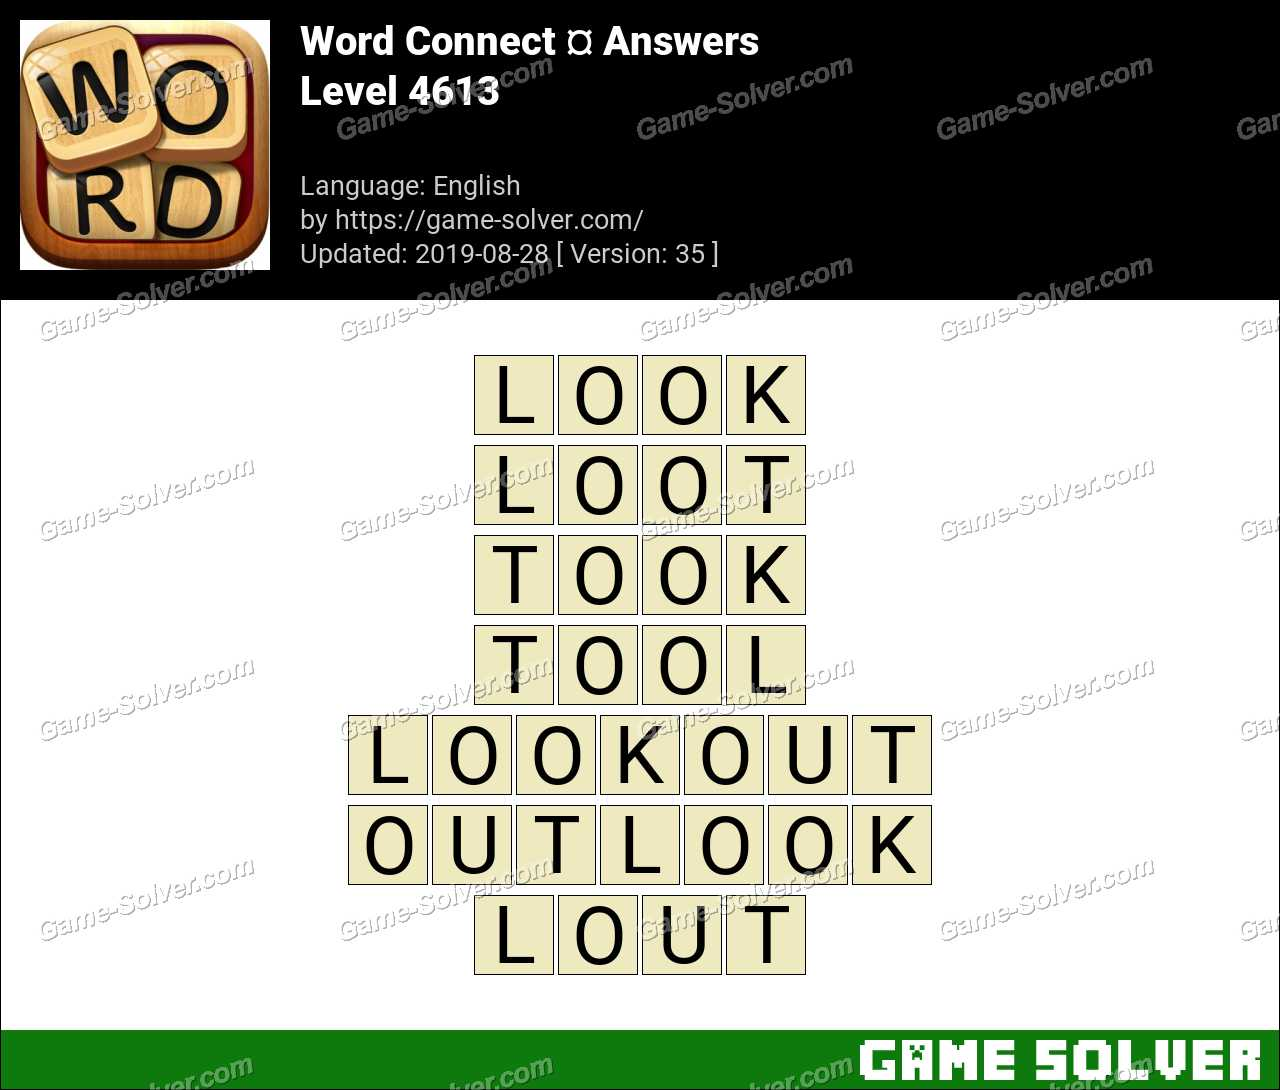 Word Connect Level 4613 Answers